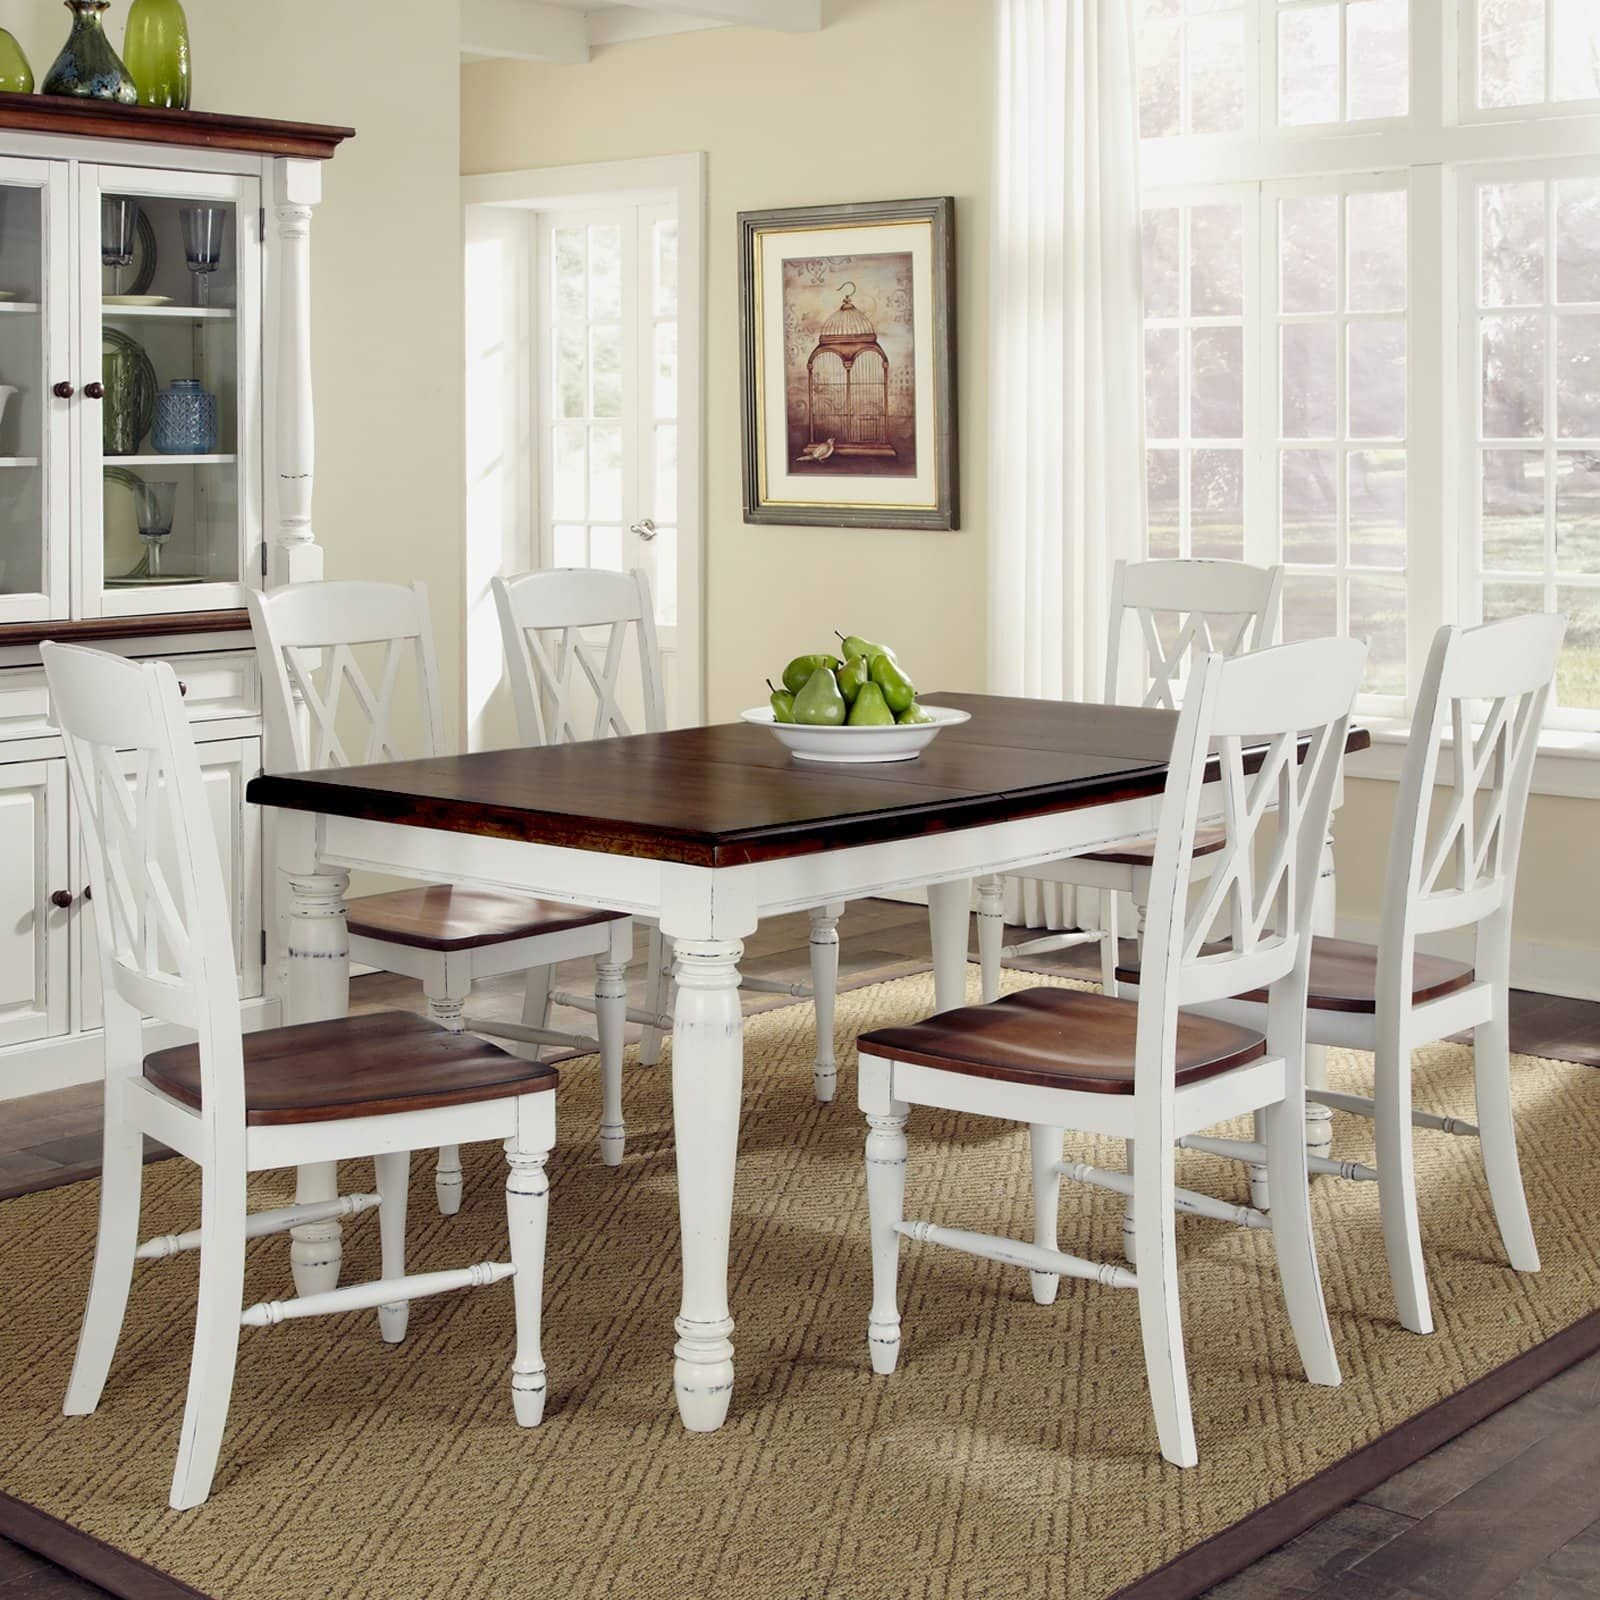 Home Styles Monarch 7 Piece Dining Table Set With 6 Double Xback Chairs  White  Oak  Dining